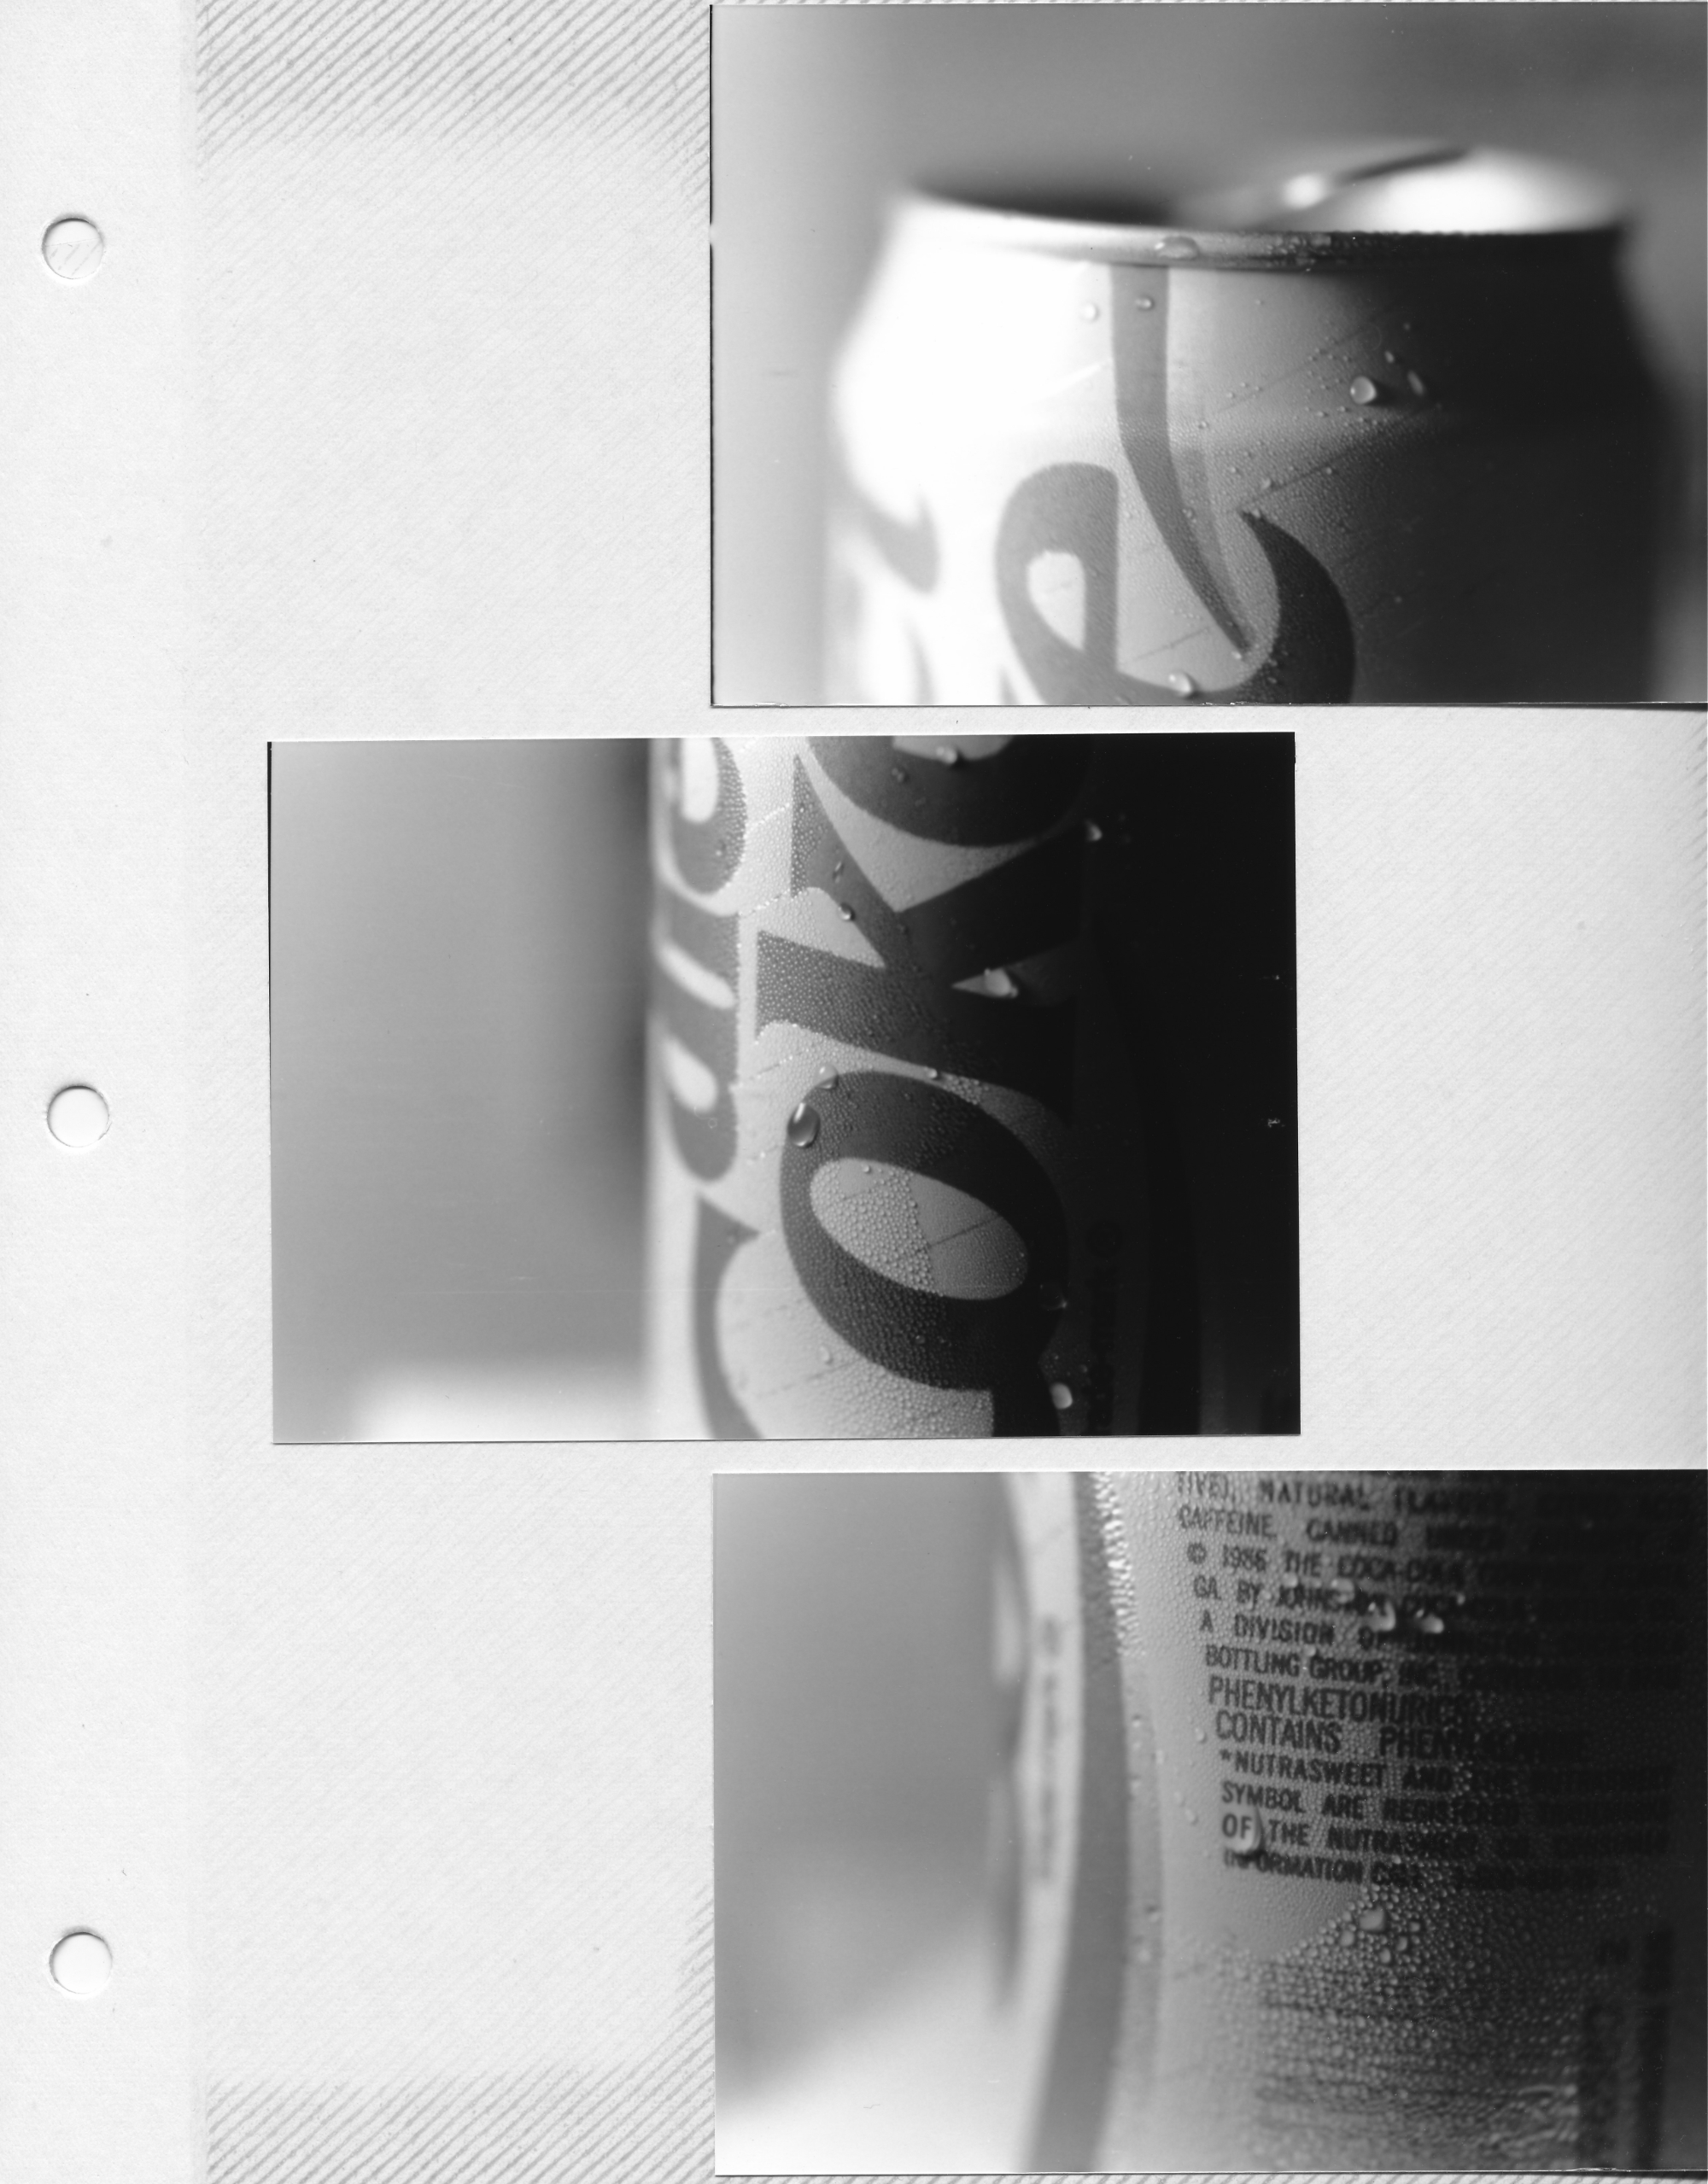 A page straight from an old photo album. This dates back to around 1989. I have no idea what exactly I was going for here, but I was obviously having fun with offsetting closeups of the soda can.